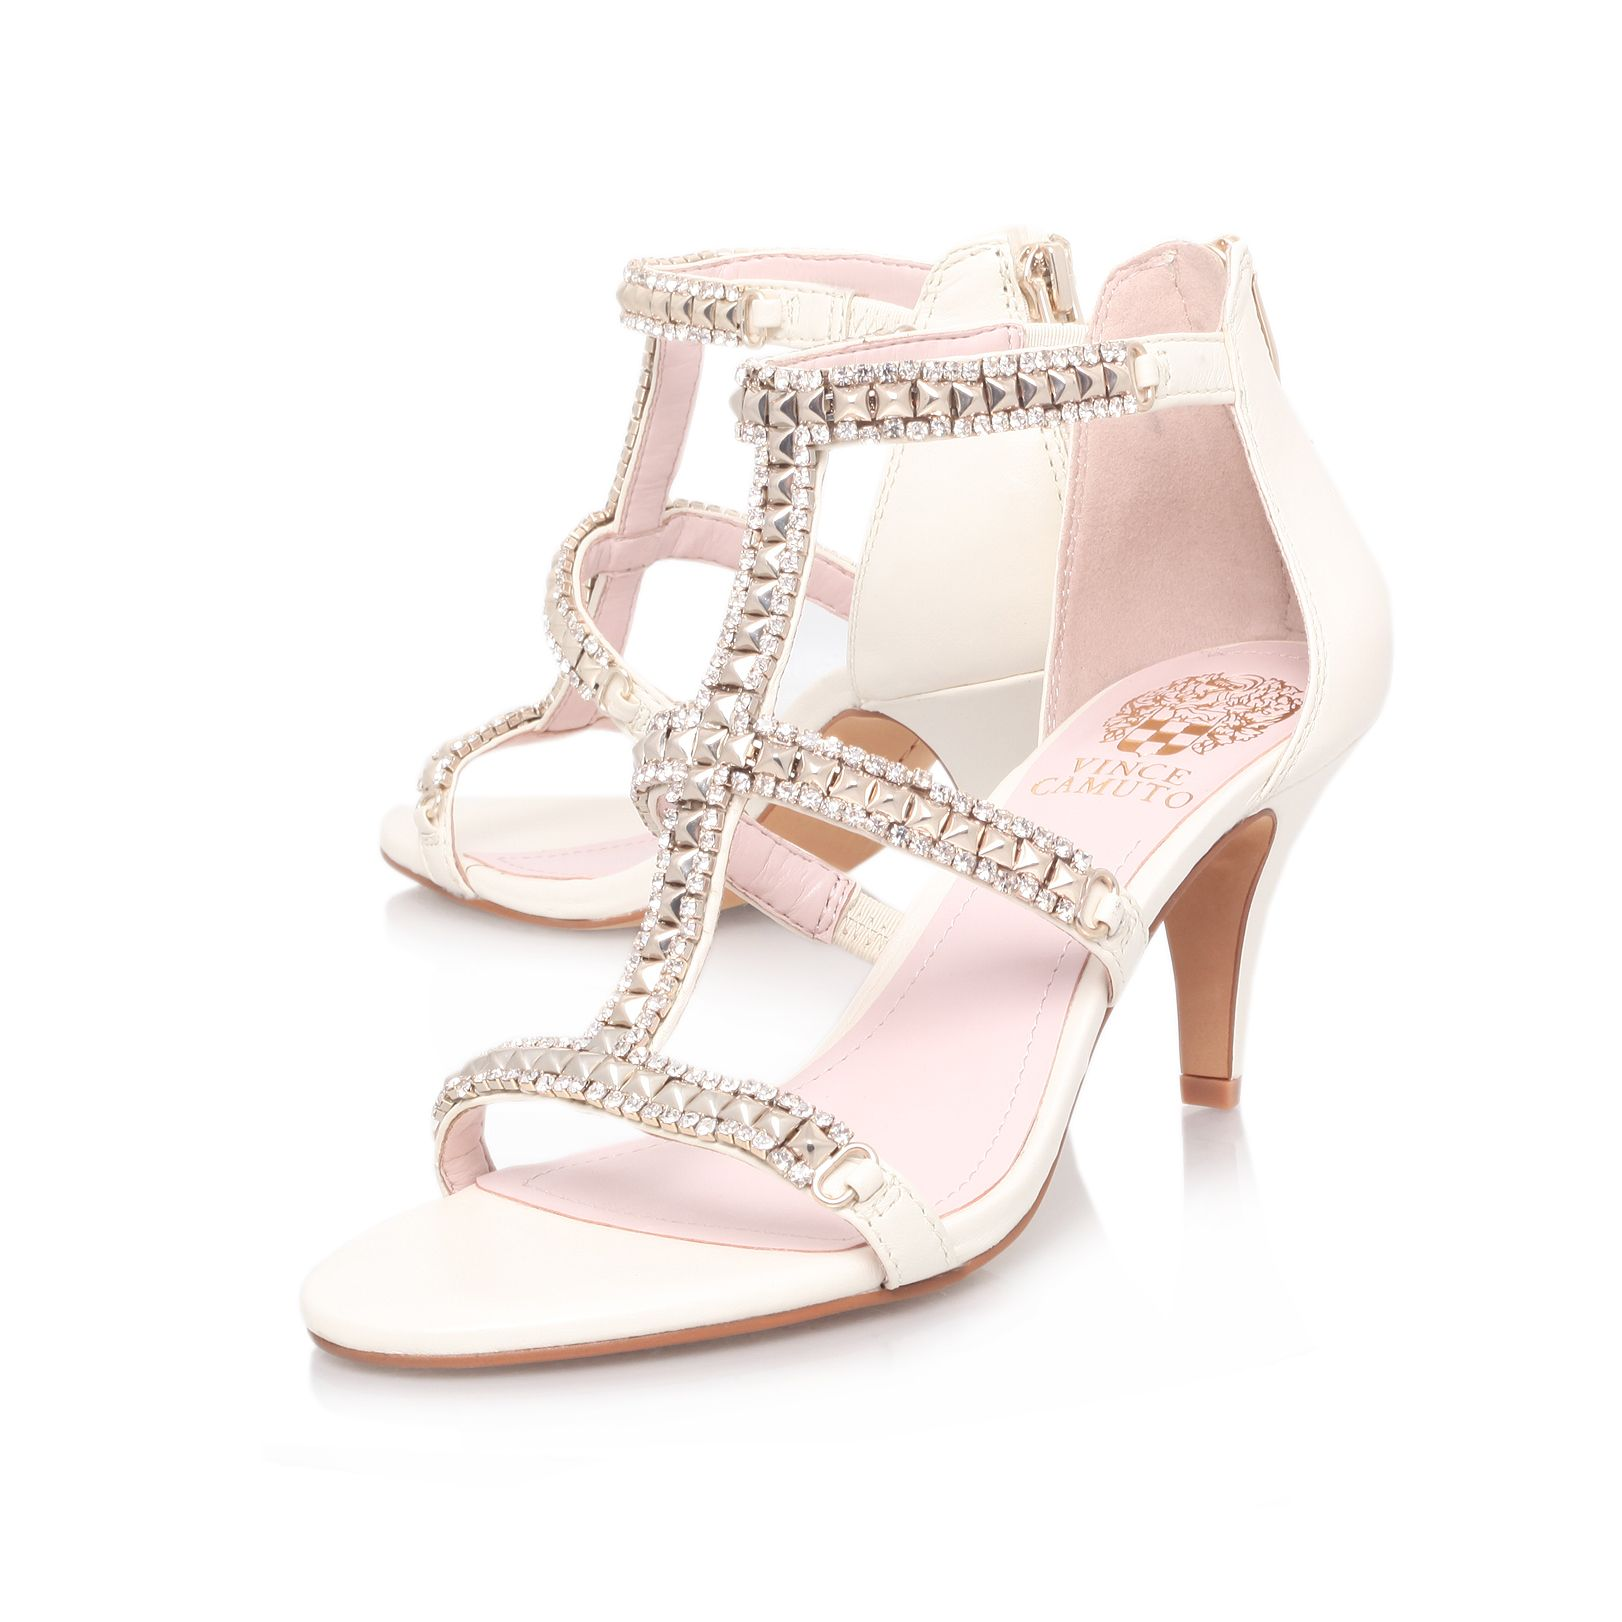 Mauriza leather open toe mid heel sandals